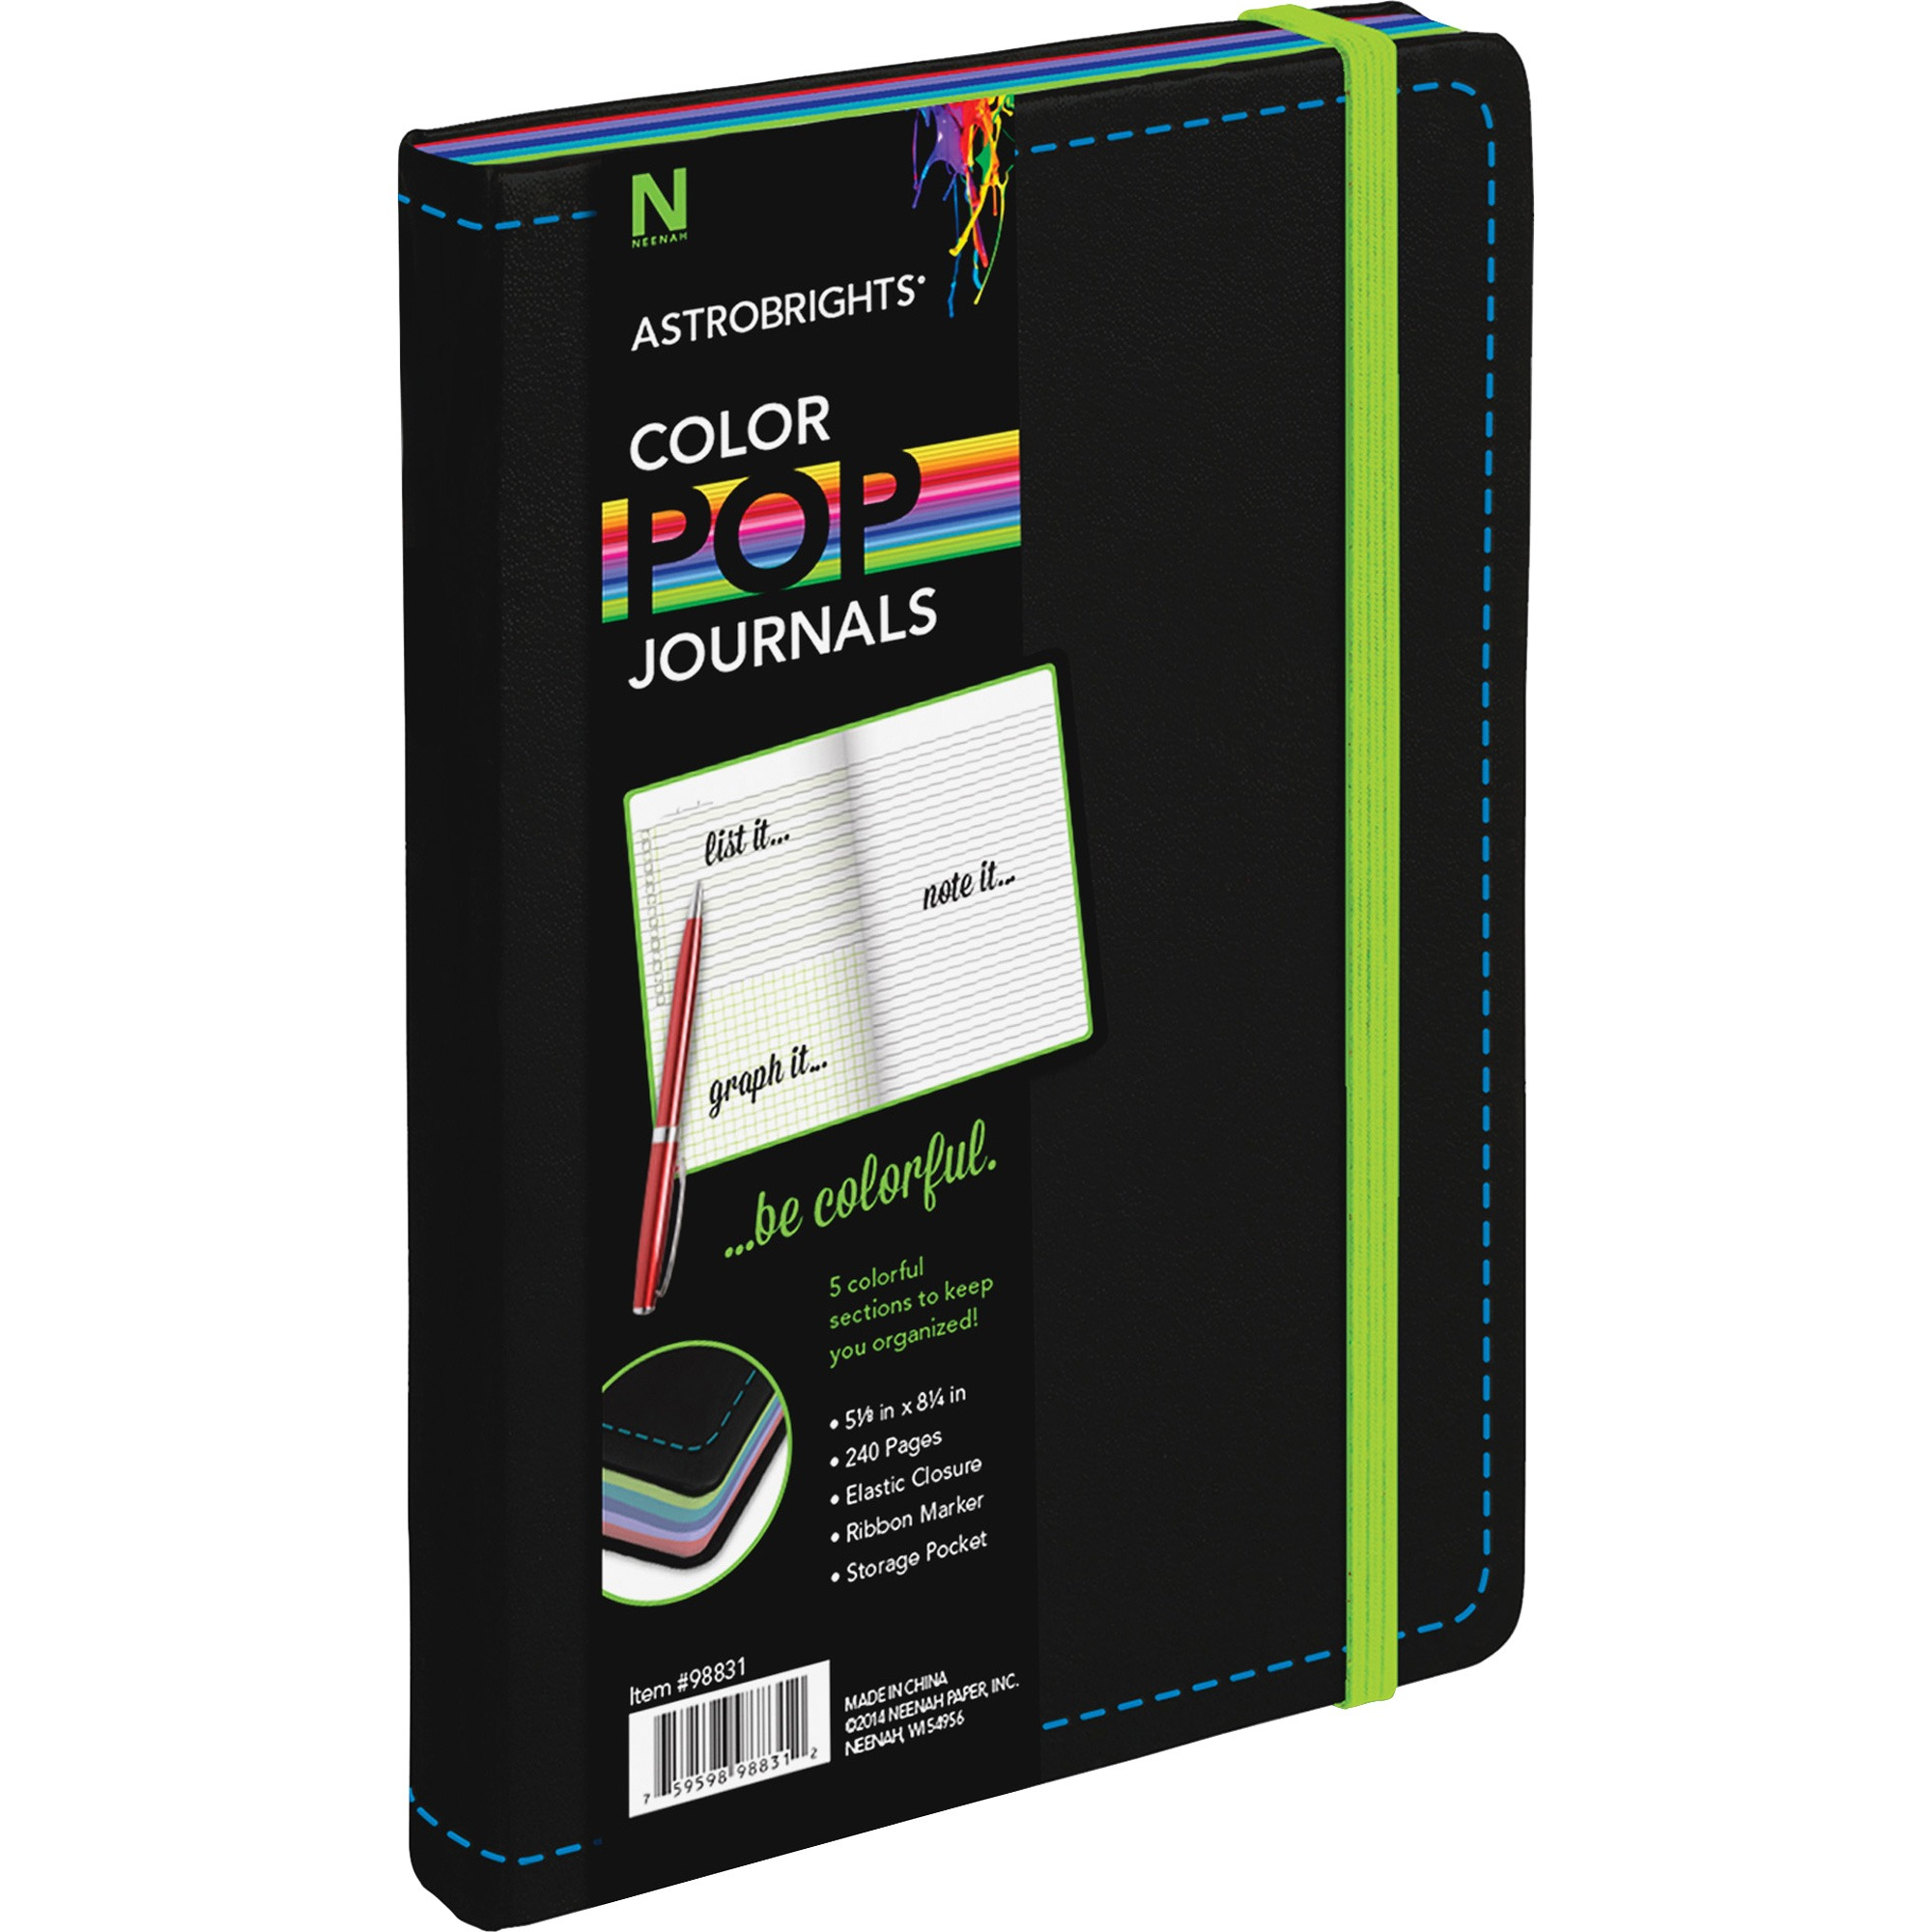 Astrobrights Leatherette Journal, 240 / Each (Quantity)